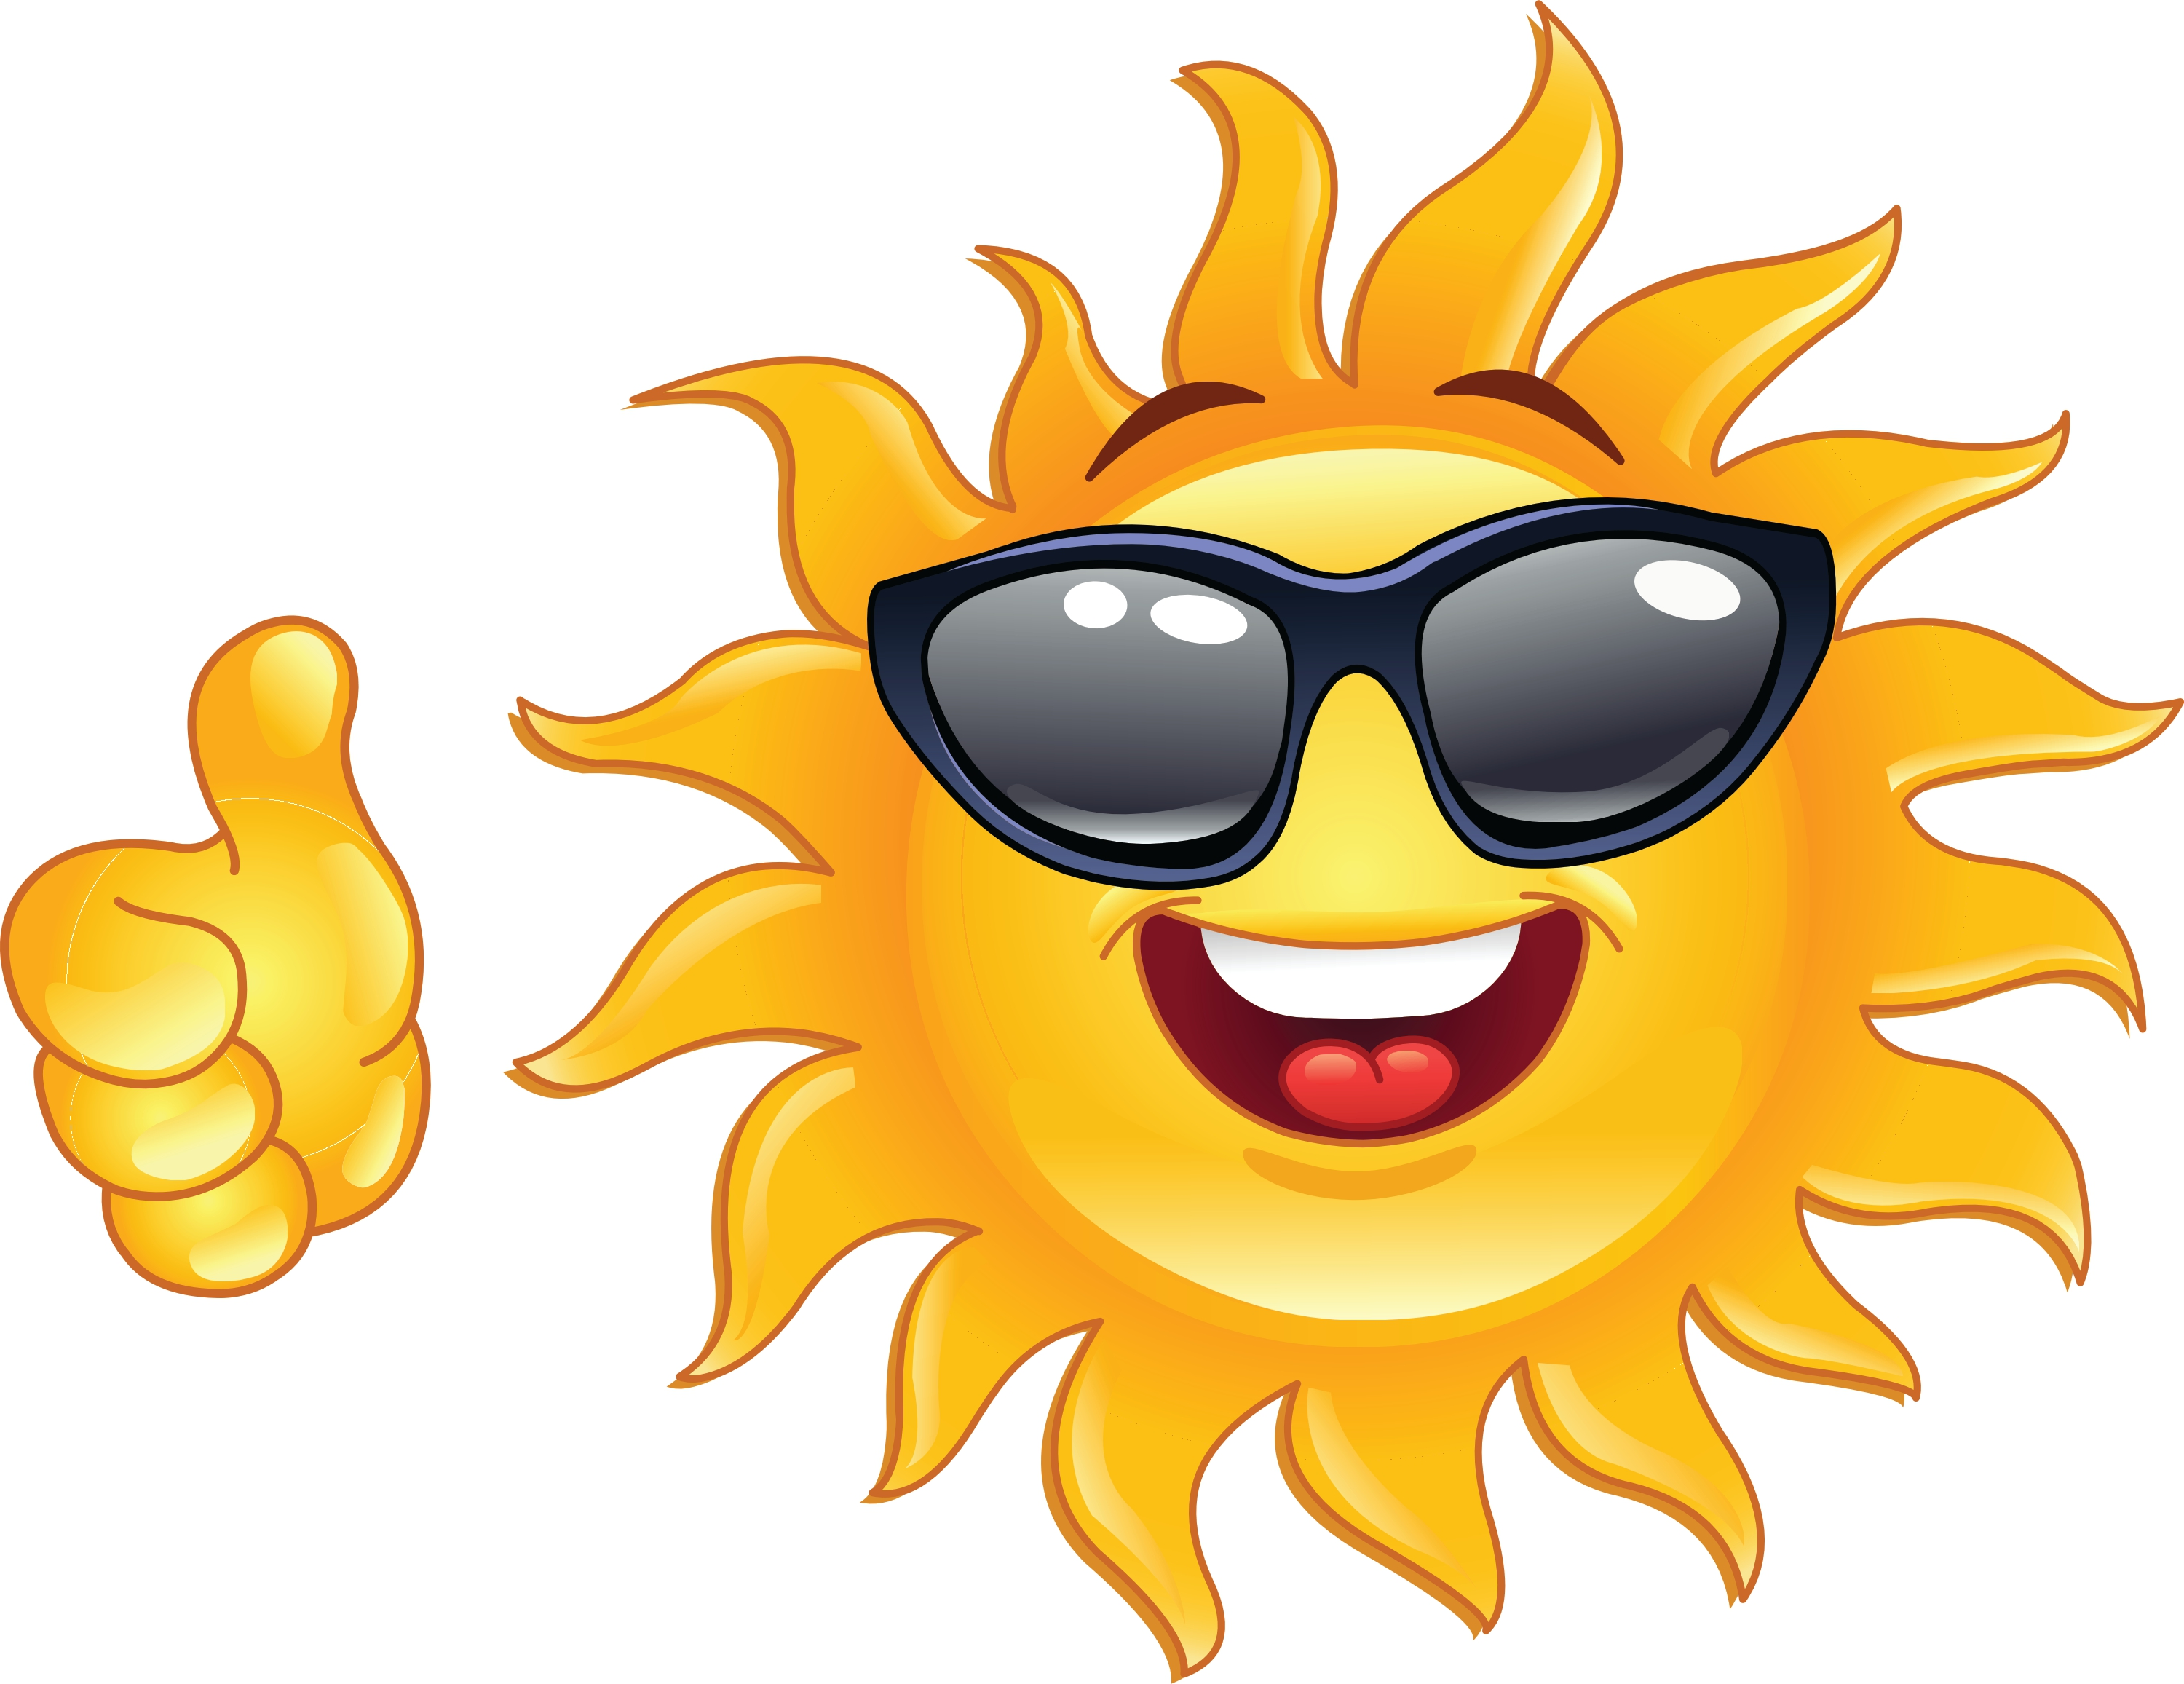 Happy sun clipart 3 - Happy Sun Clipart